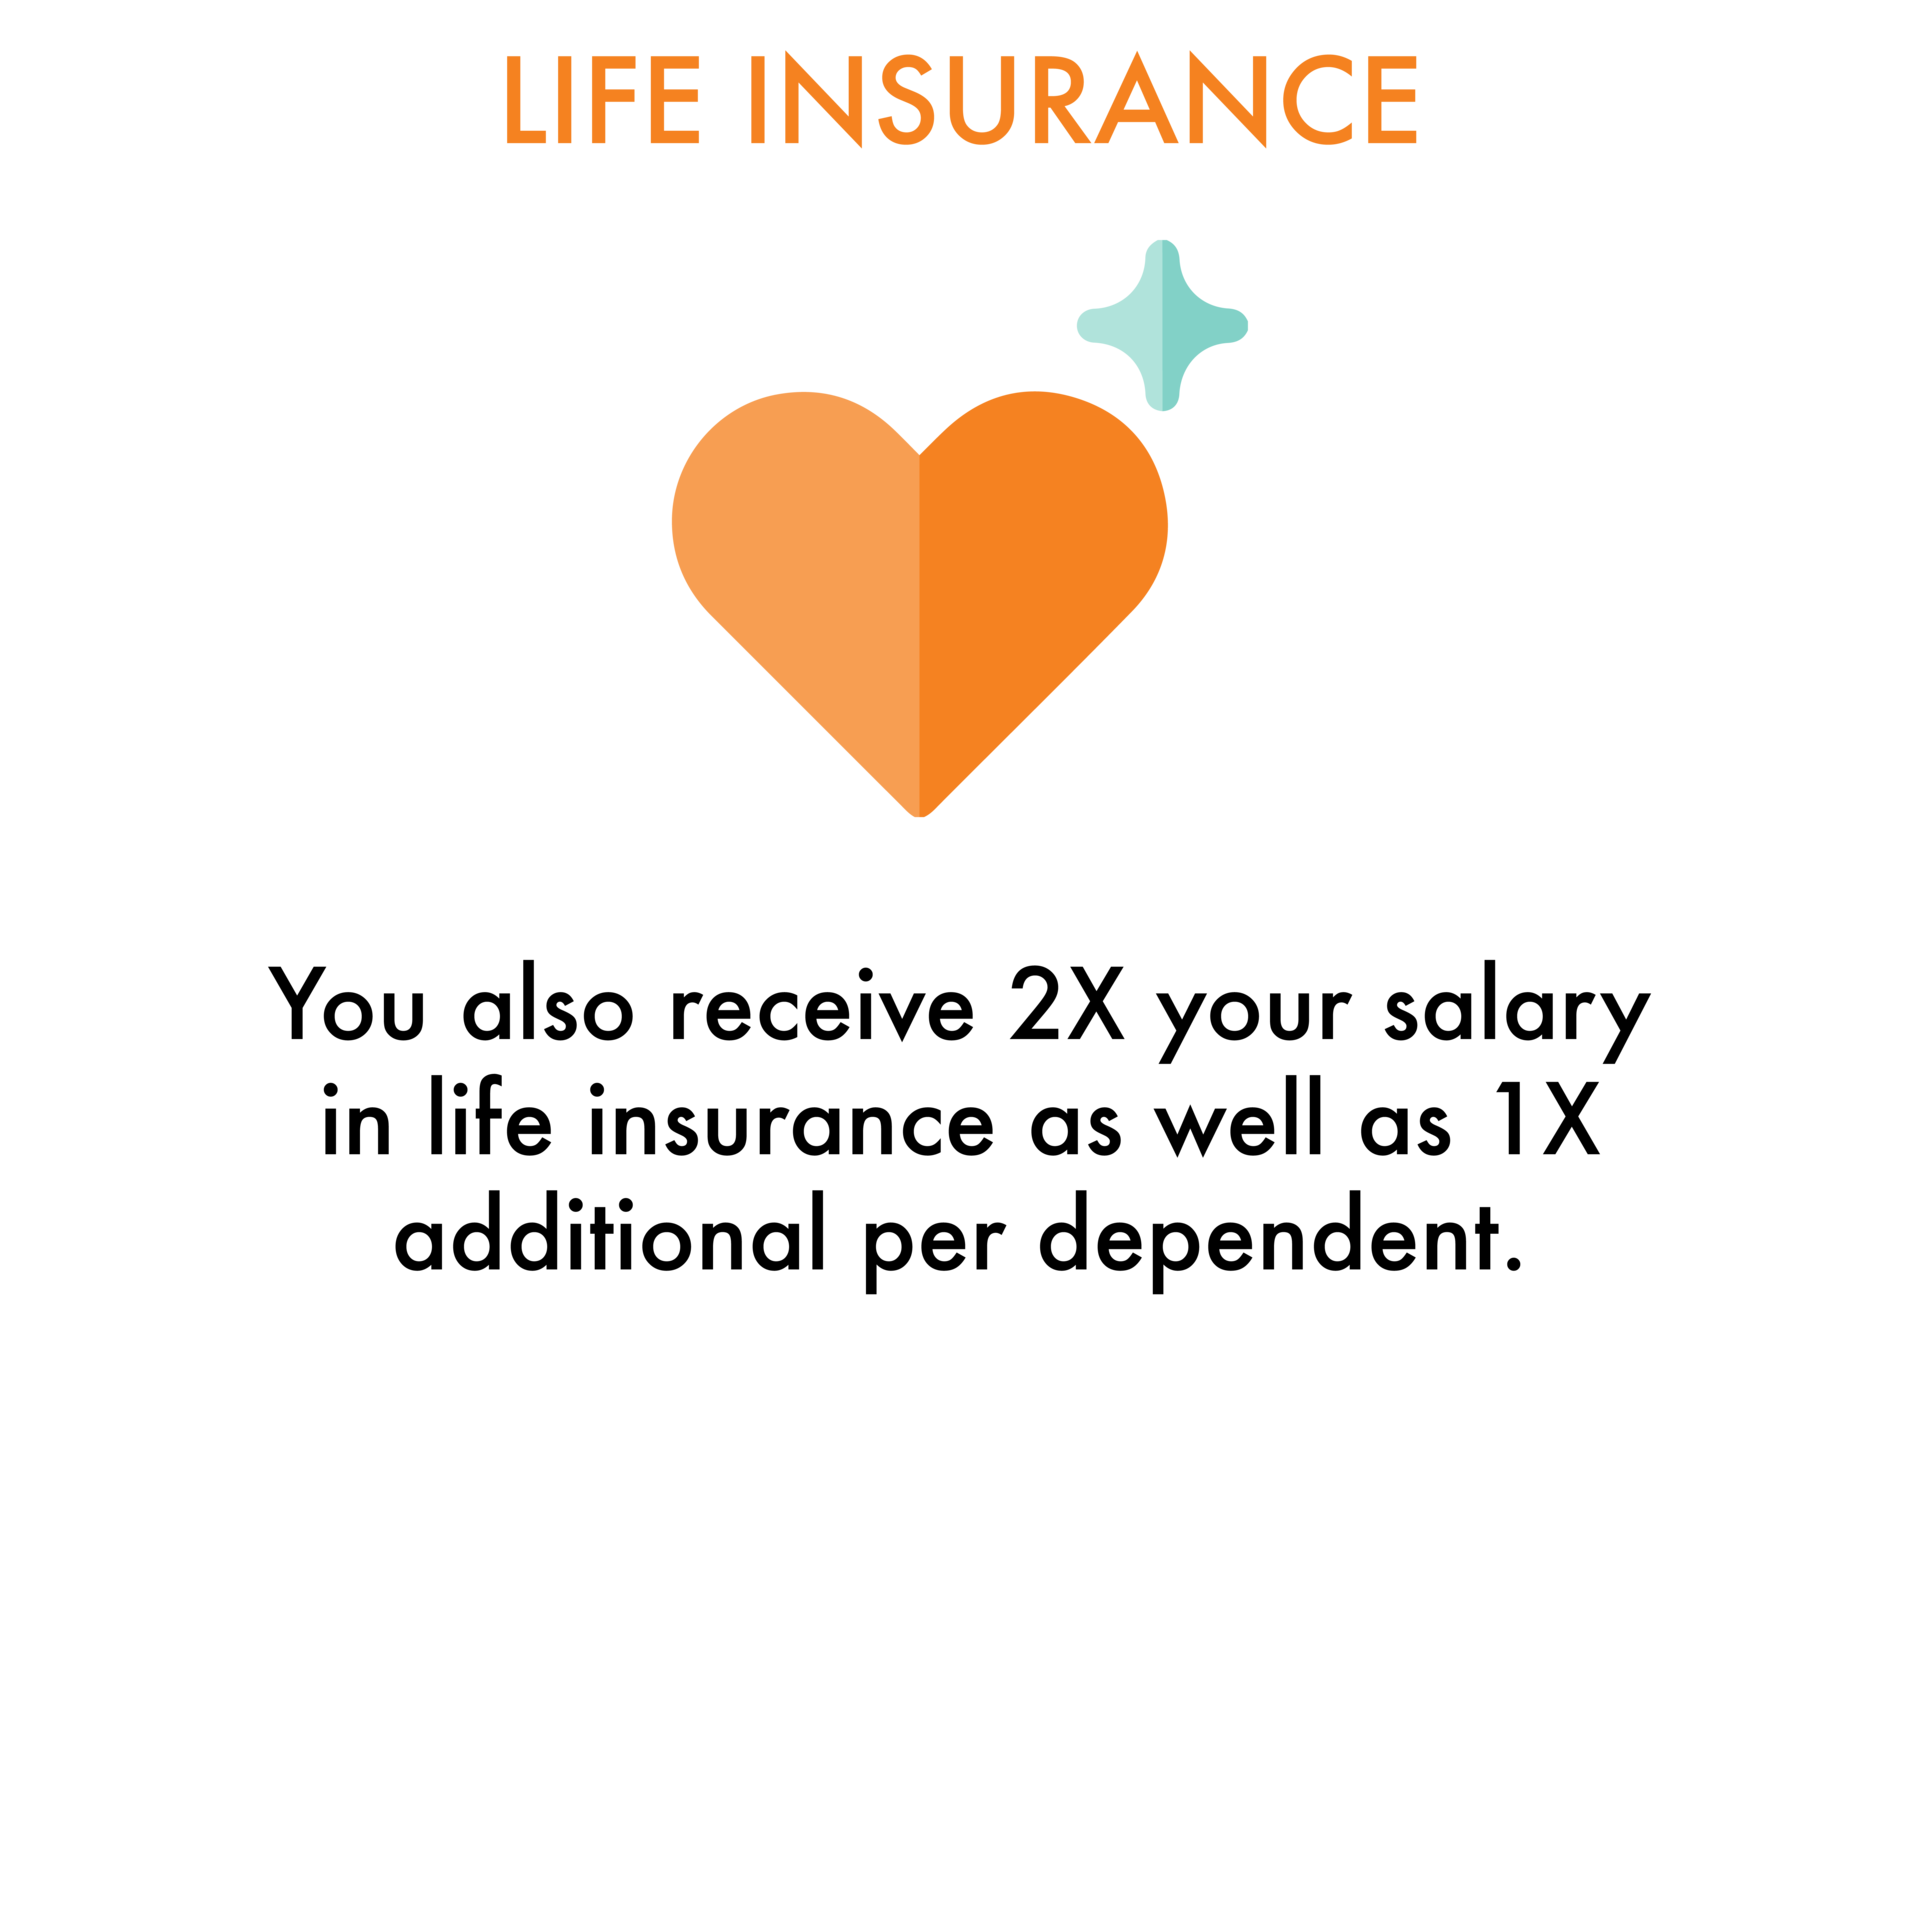 Life Insurance: You also receive 2X your salary in life insurance as well as 1X additional per dependent.